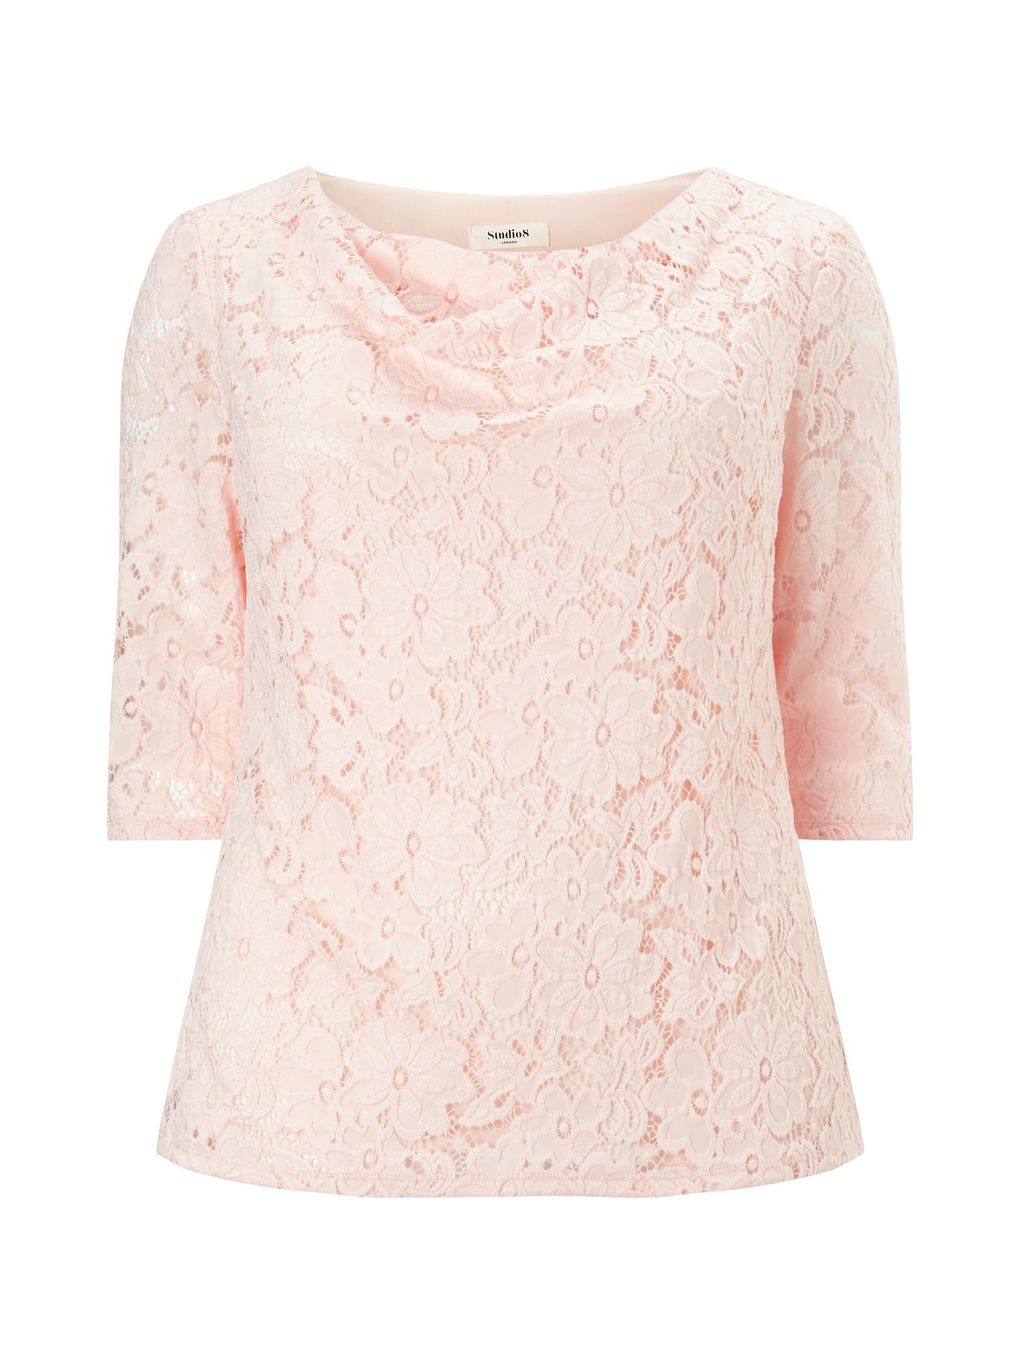 Simone Top, Blush - neckline: cowl/draped neck; pattern: plain; predominant colour: blush; occasions: work, occasion; length: standard; style: top; fibres: polyester/polyamide - mix; fit: body skimming; sleeve length: 3/4 length; sleeve style: standard; pattern type: fabric; texture group: other - light to midweight; embellishment: lace; season: s/s 2016